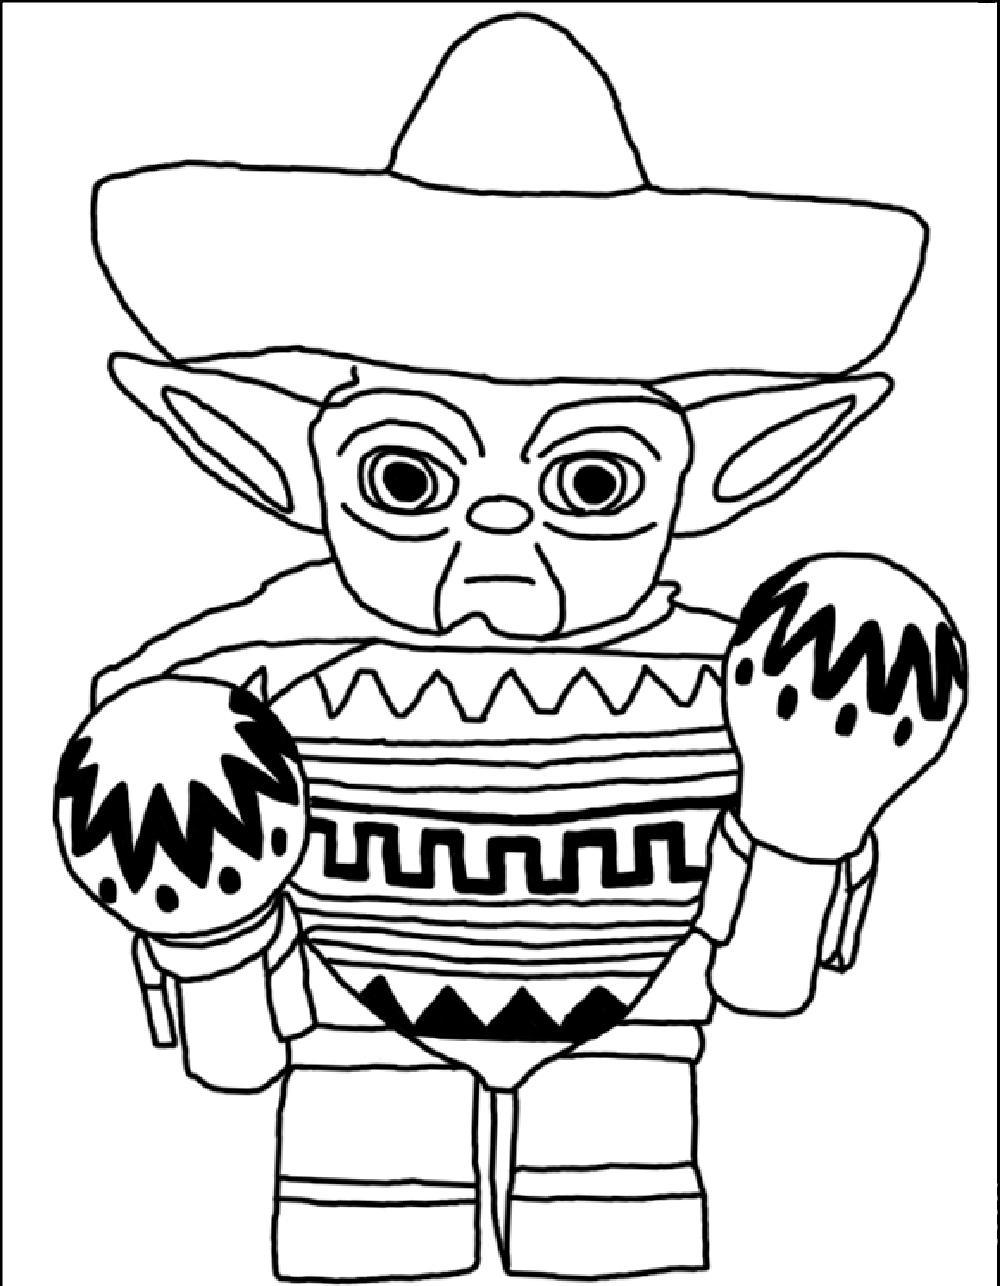 legos star wars coloring pages create your own lego coloring pages for kids coloring pages star legos wars